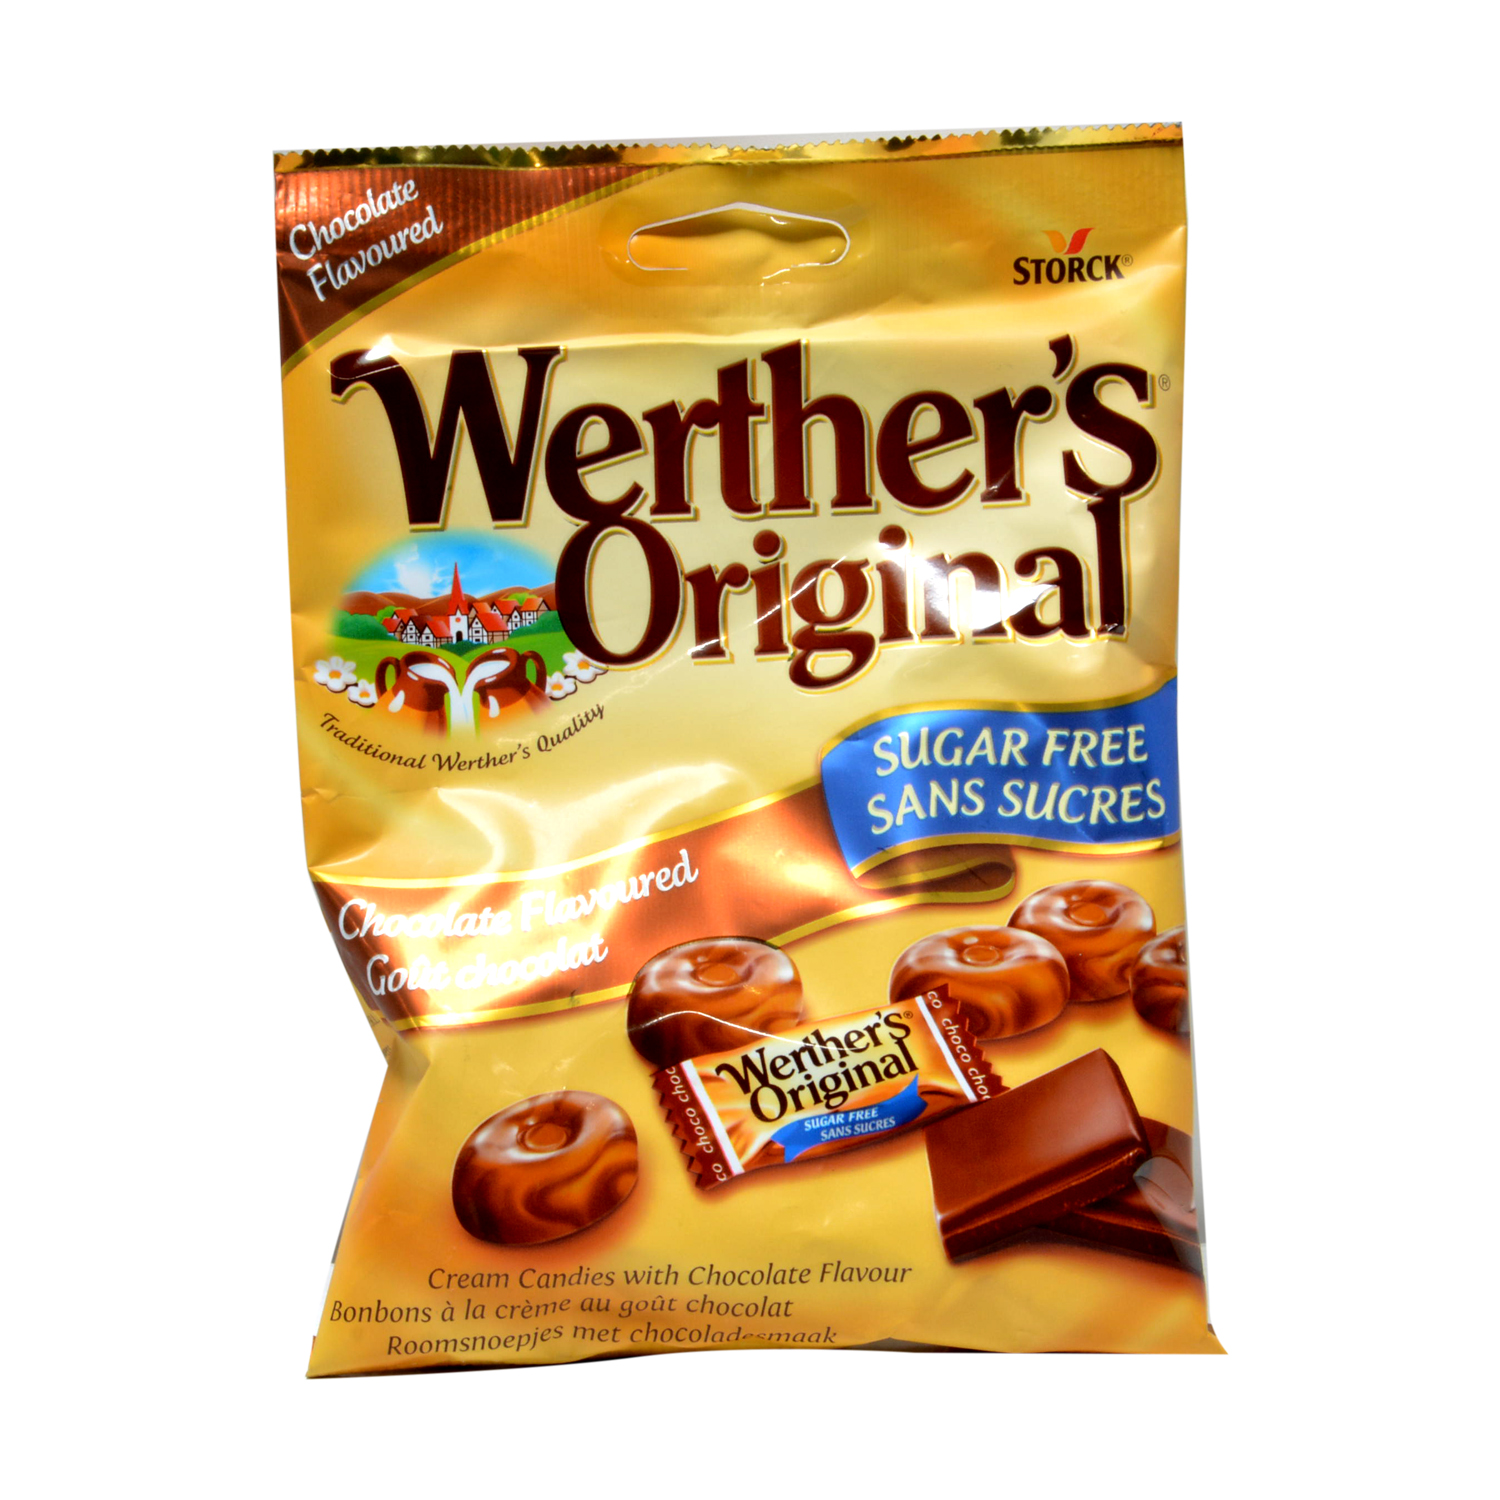 Caramelos sabor chocoalte Wherther's Original 60 g.